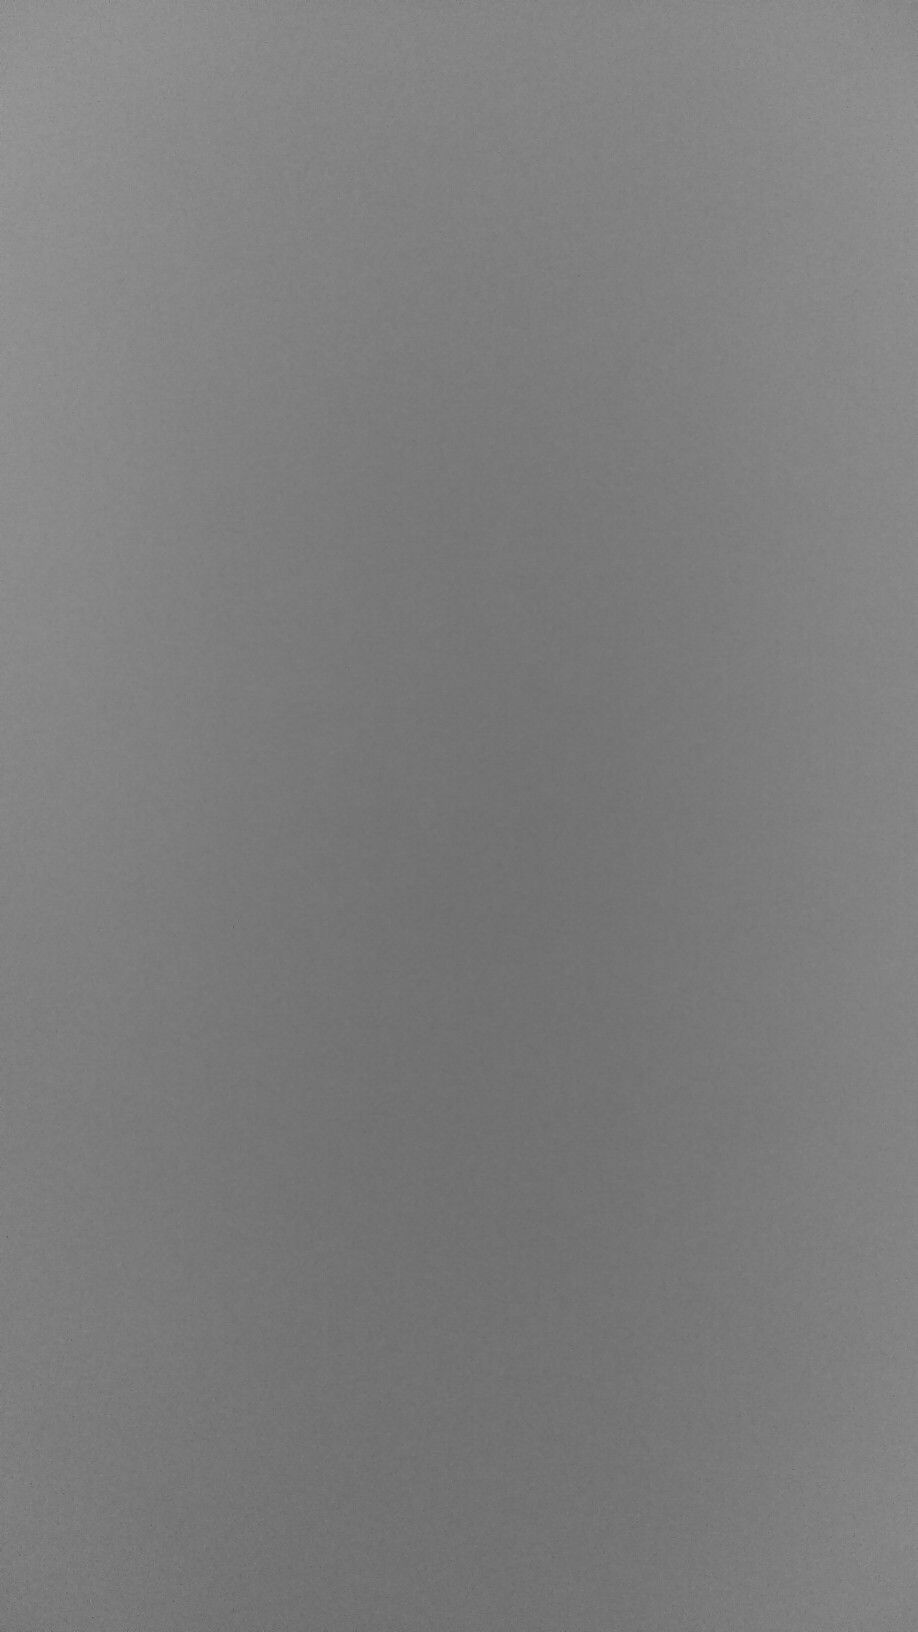 Plain Grey Back Ground. Wallpaper for Android. Size; 9X16